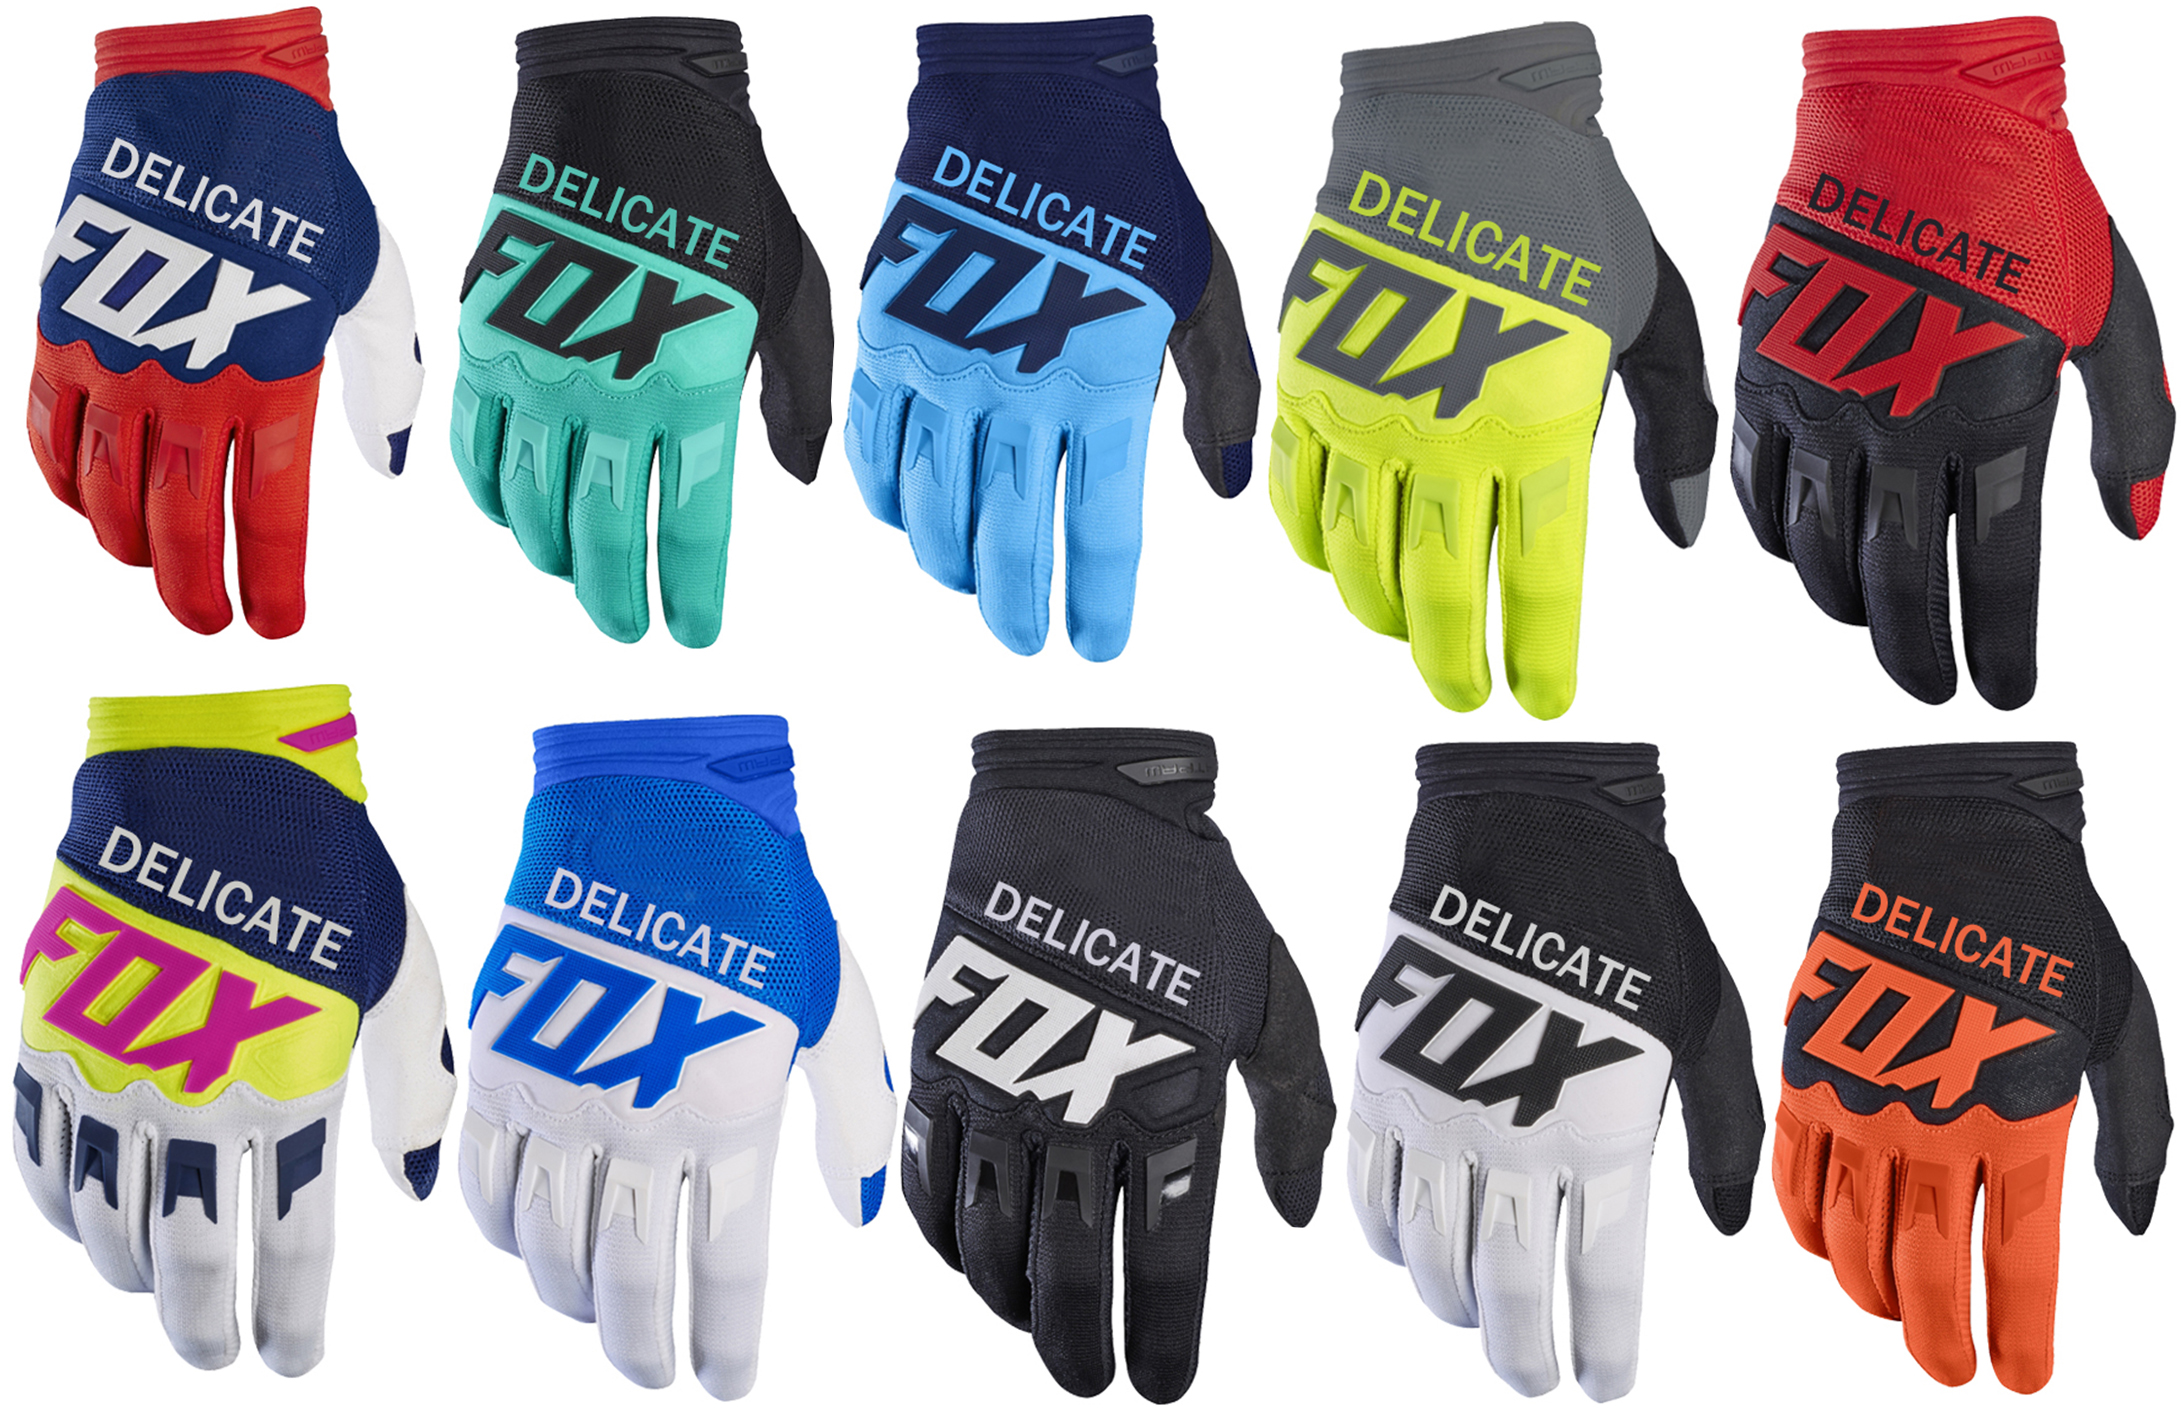 Delicate Fox Motocross Gloves MX Racing ATV MTB Off Road Cycling Protective Equipment DIRTPAW GLOVE